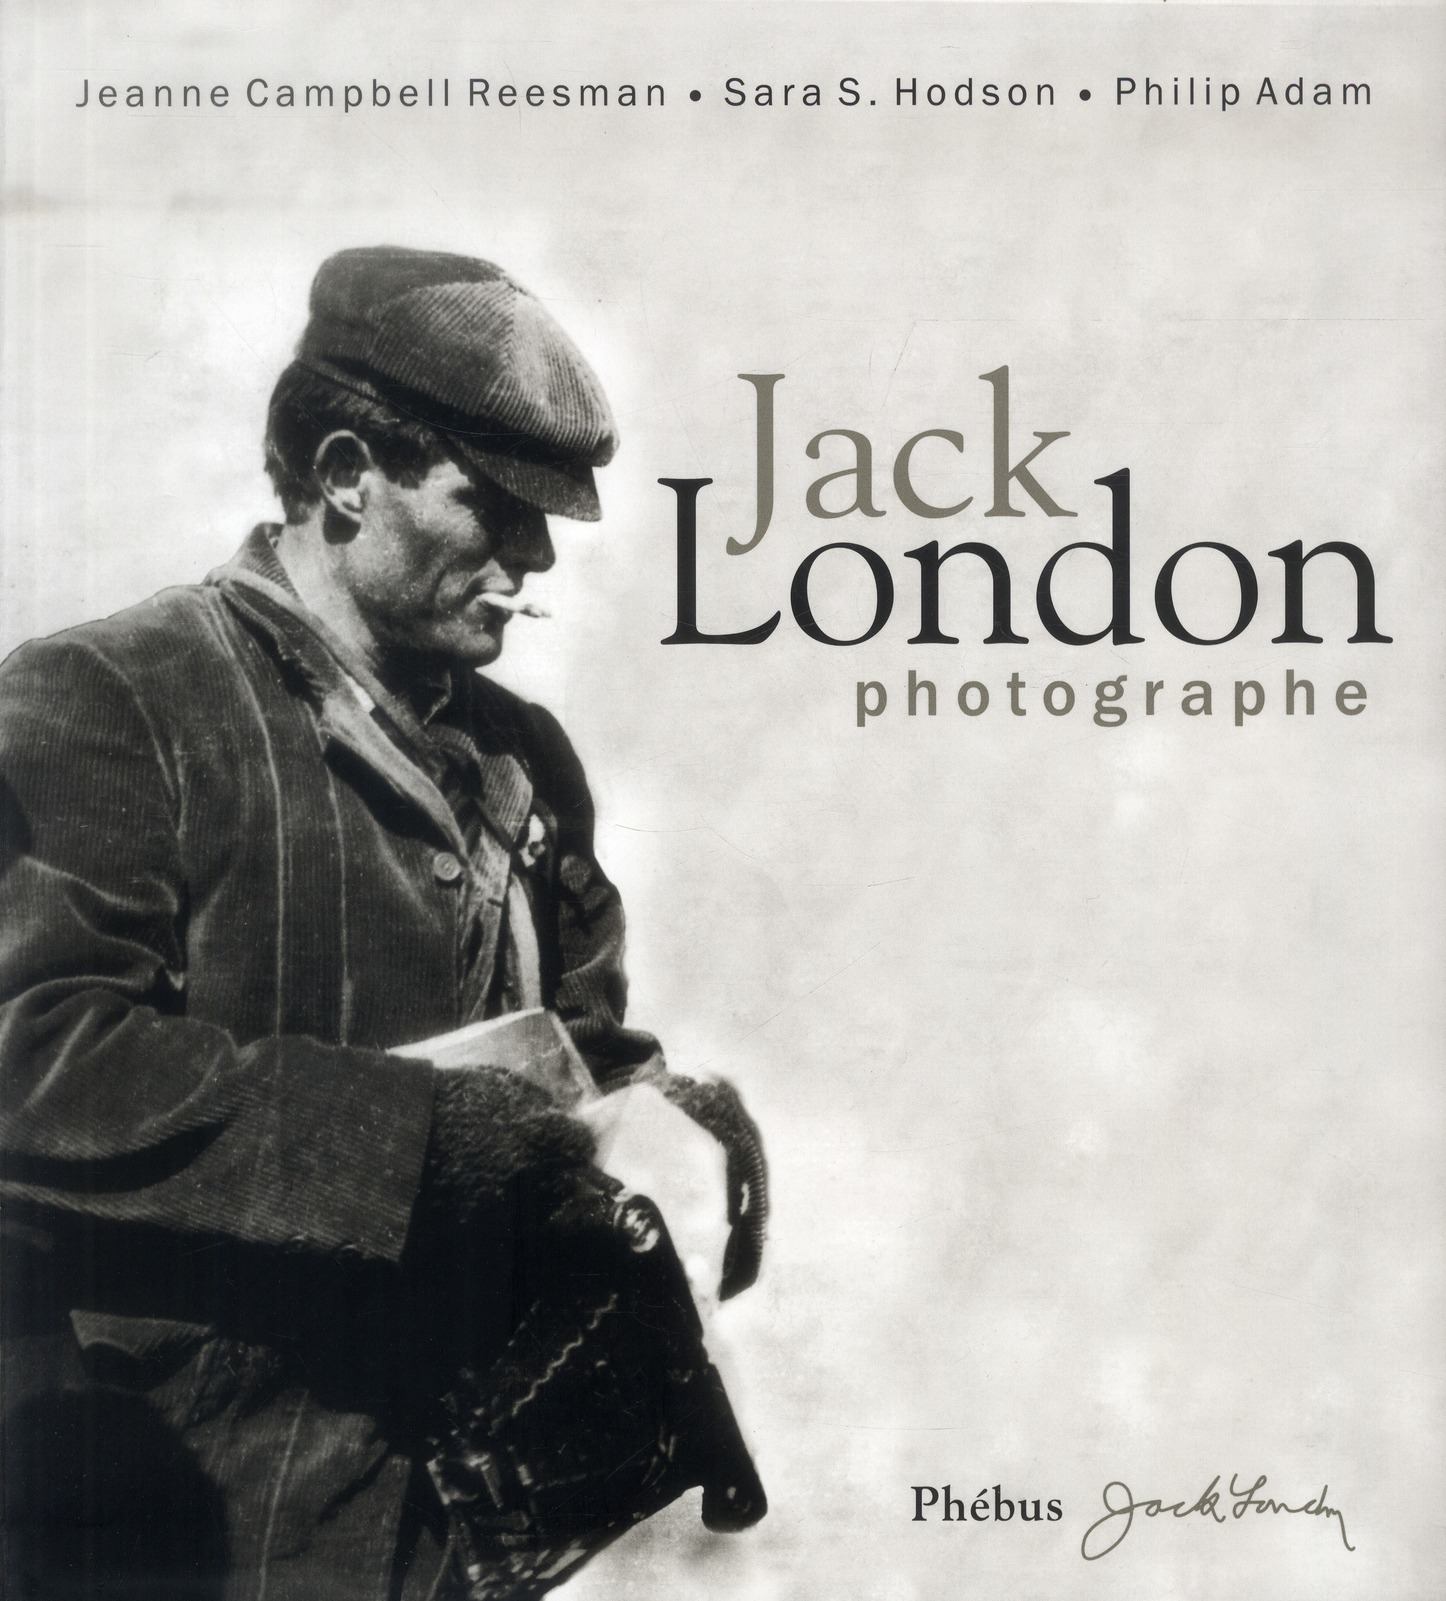 Jack london, photographe